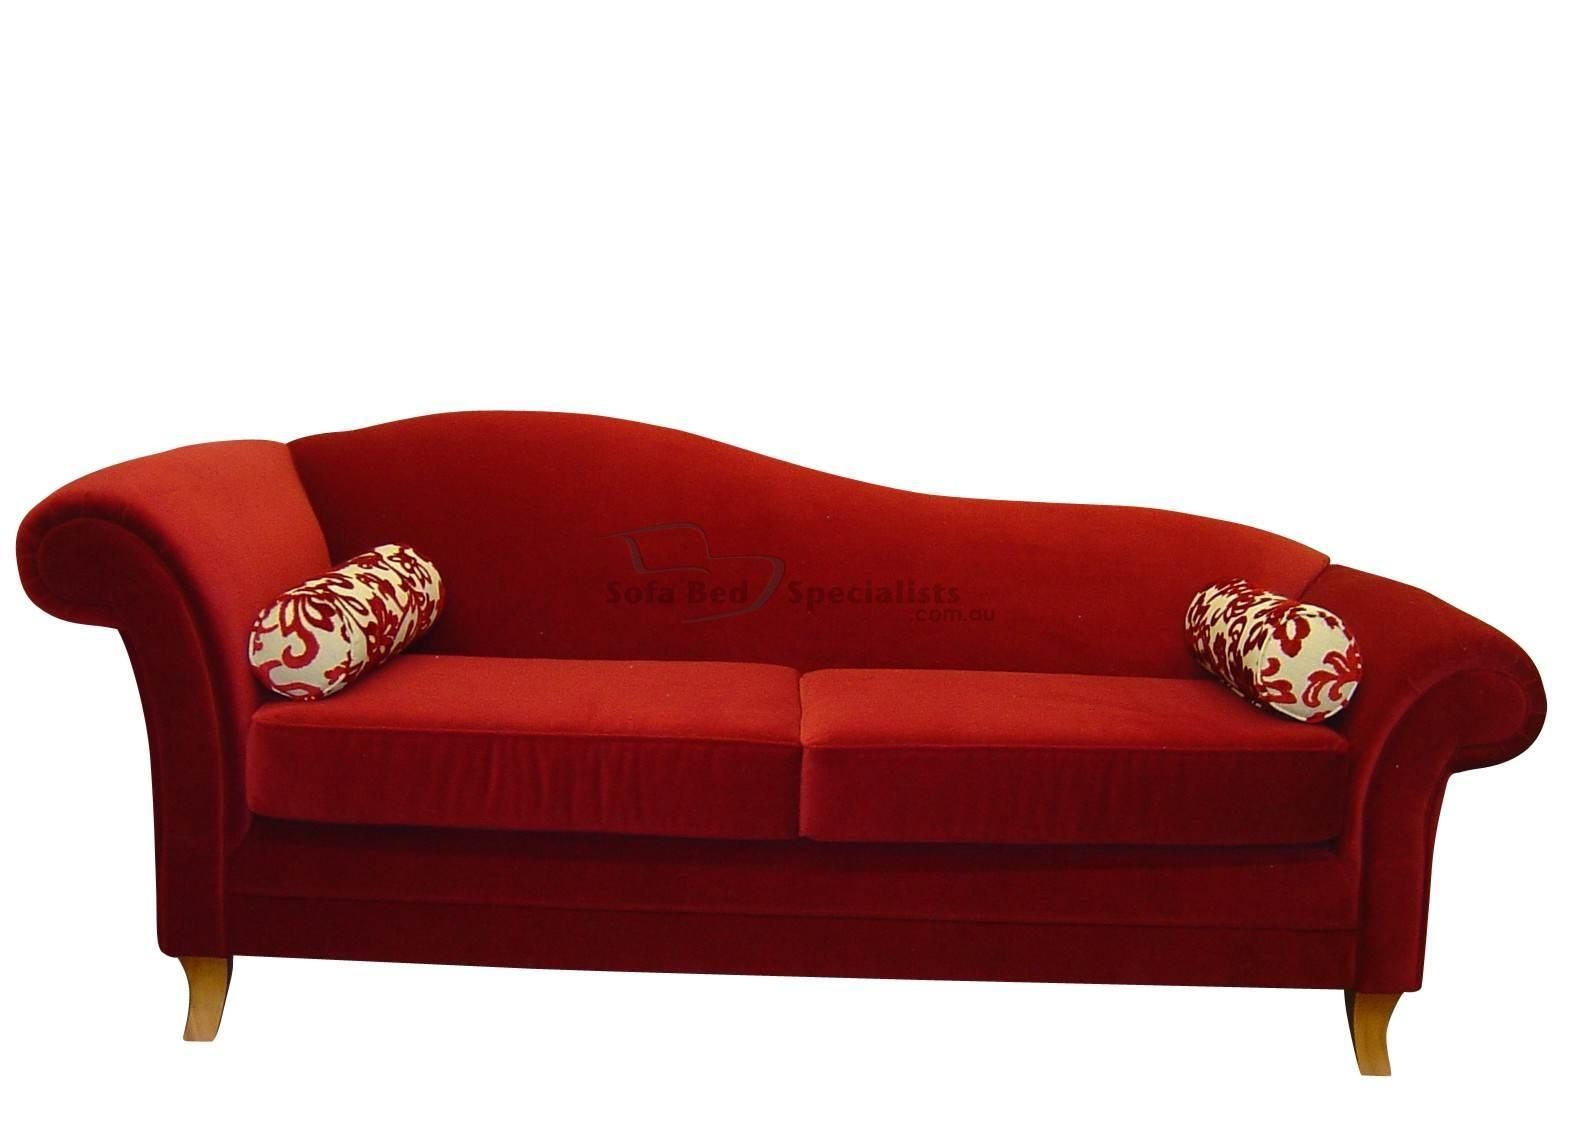 √ Red Sofa   red couch: red leather sectional couch